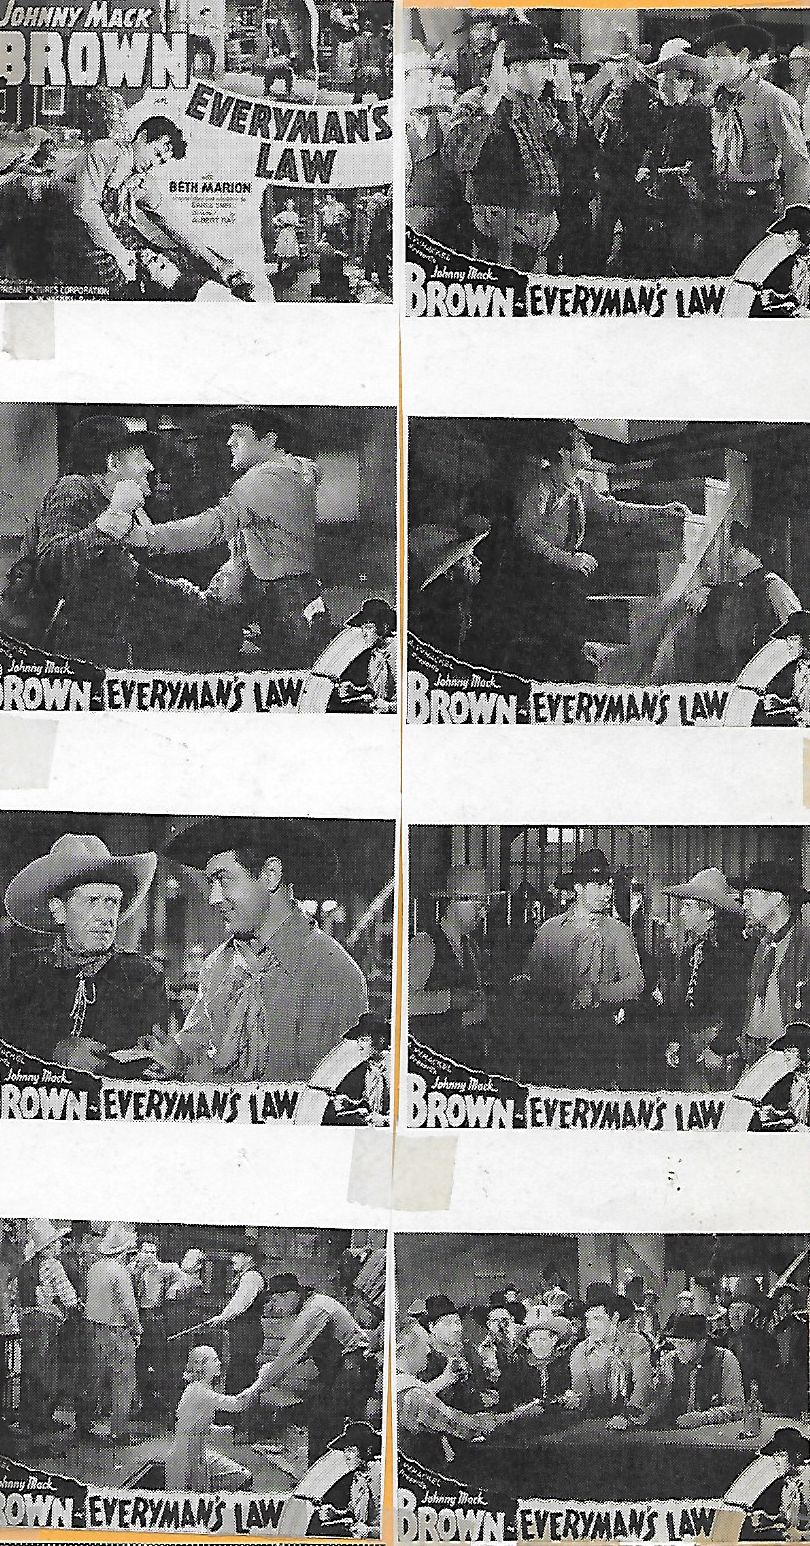 Richard Alexander, Barney Beasley, John Beck, Johnny Mack Brown, Frank Campeau, Roger Gray, Lloyd Ingraham, Beth Marion, Horace Murphy, and Slim Whitaker in Everyman's Law (1936)